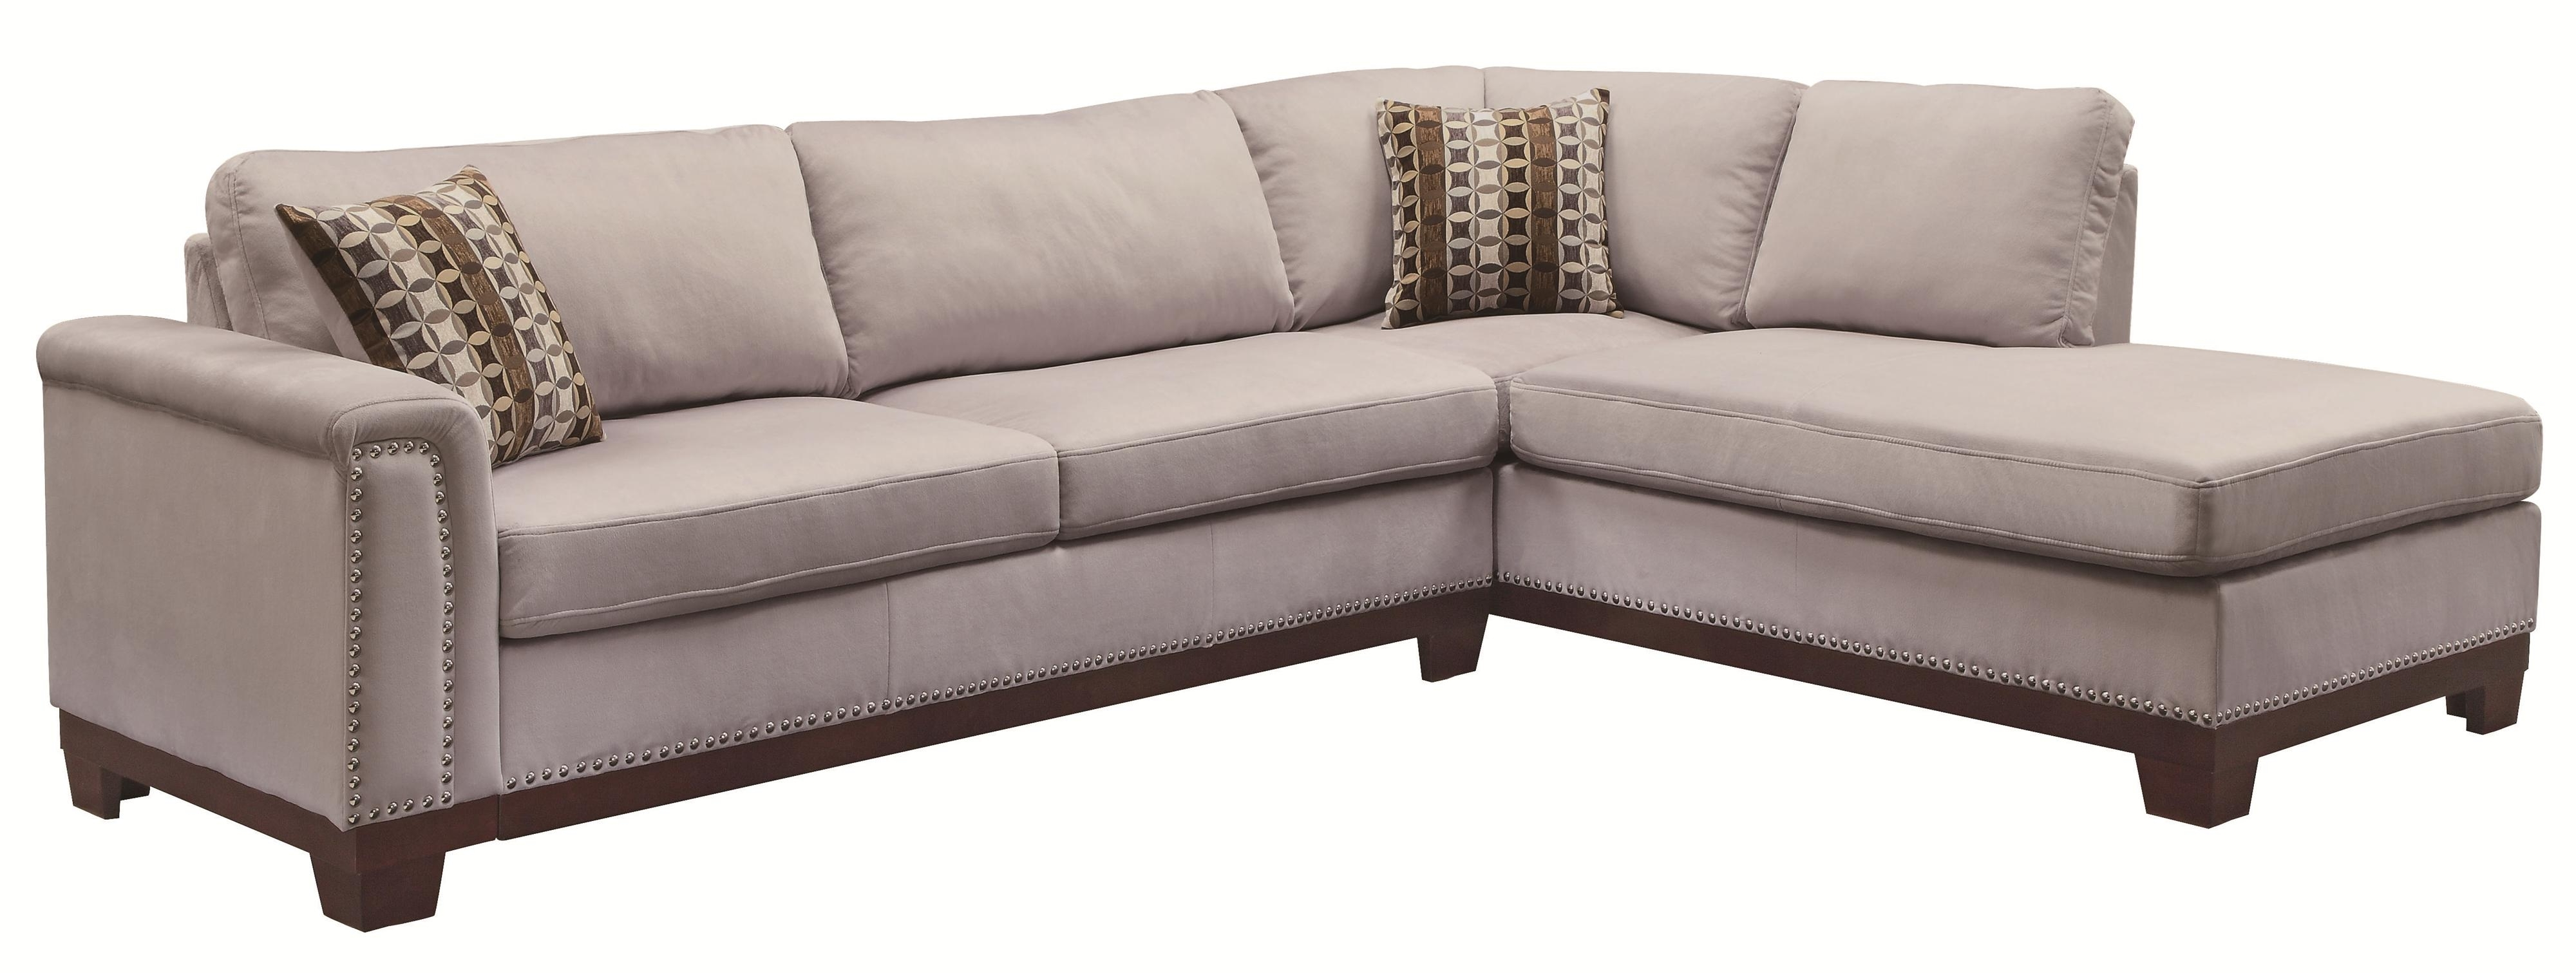 Trendy Small Couches With Chaise Lounge In Stylish Couch With Chaise Lounge With Stylish Small Living Room (View 13 of 15)